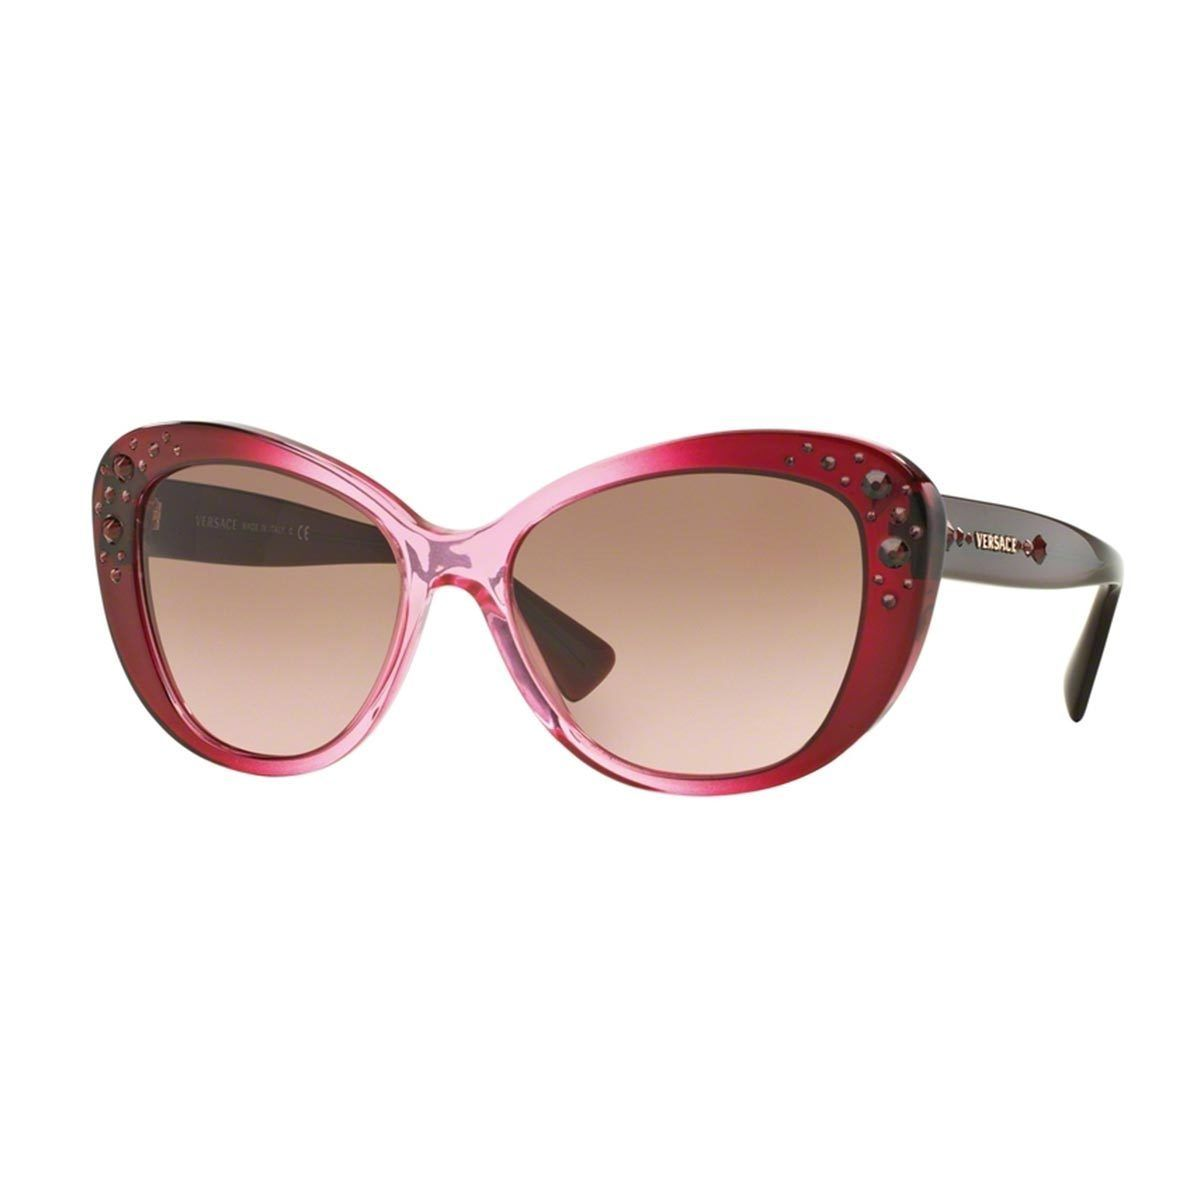 61cf60a73866 Versace Women's VE4309BA Pink Plastic Cat Eye Sunglasses - Versace  Sunglasses rank among the upper ends of trend and luxury. Versace eye wear  feature its ...